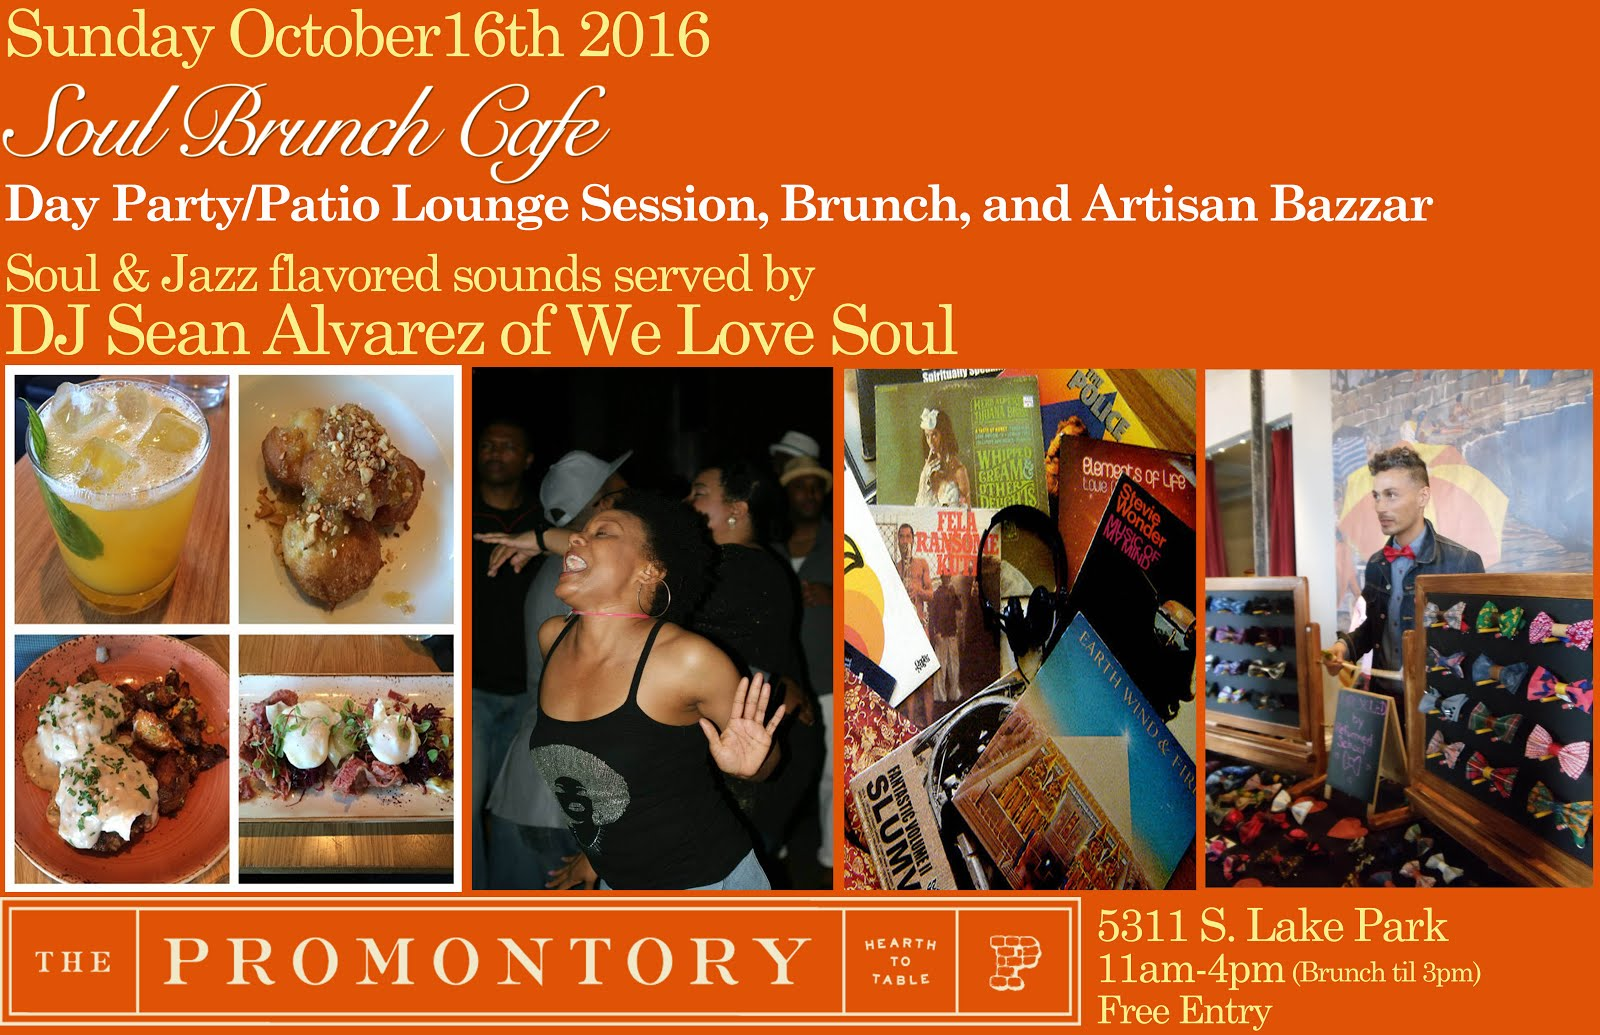 Sunday 10/16: Soul Brunch Cafe @ The Promontory